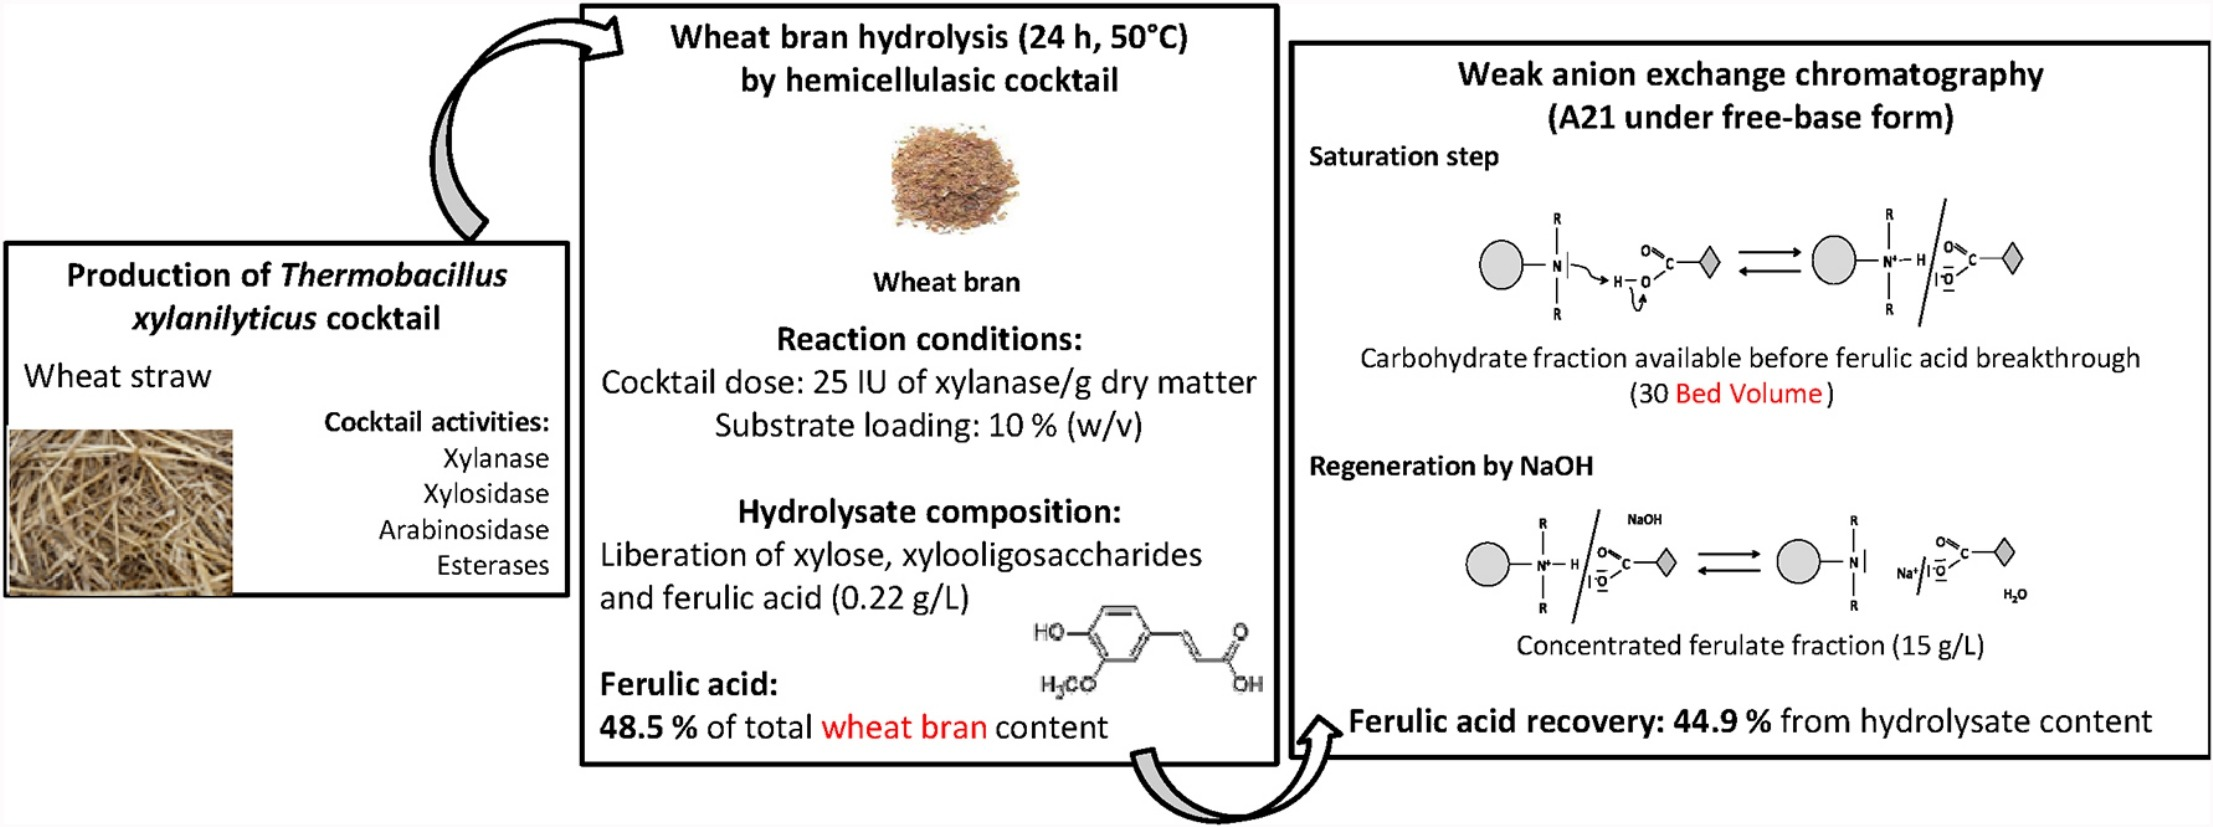 A novel and integrative process: From enzymatic fractionation of wheat bran with a hemicellulasic cocktail to the recovery of ferulic acid by weak anion exchange resin